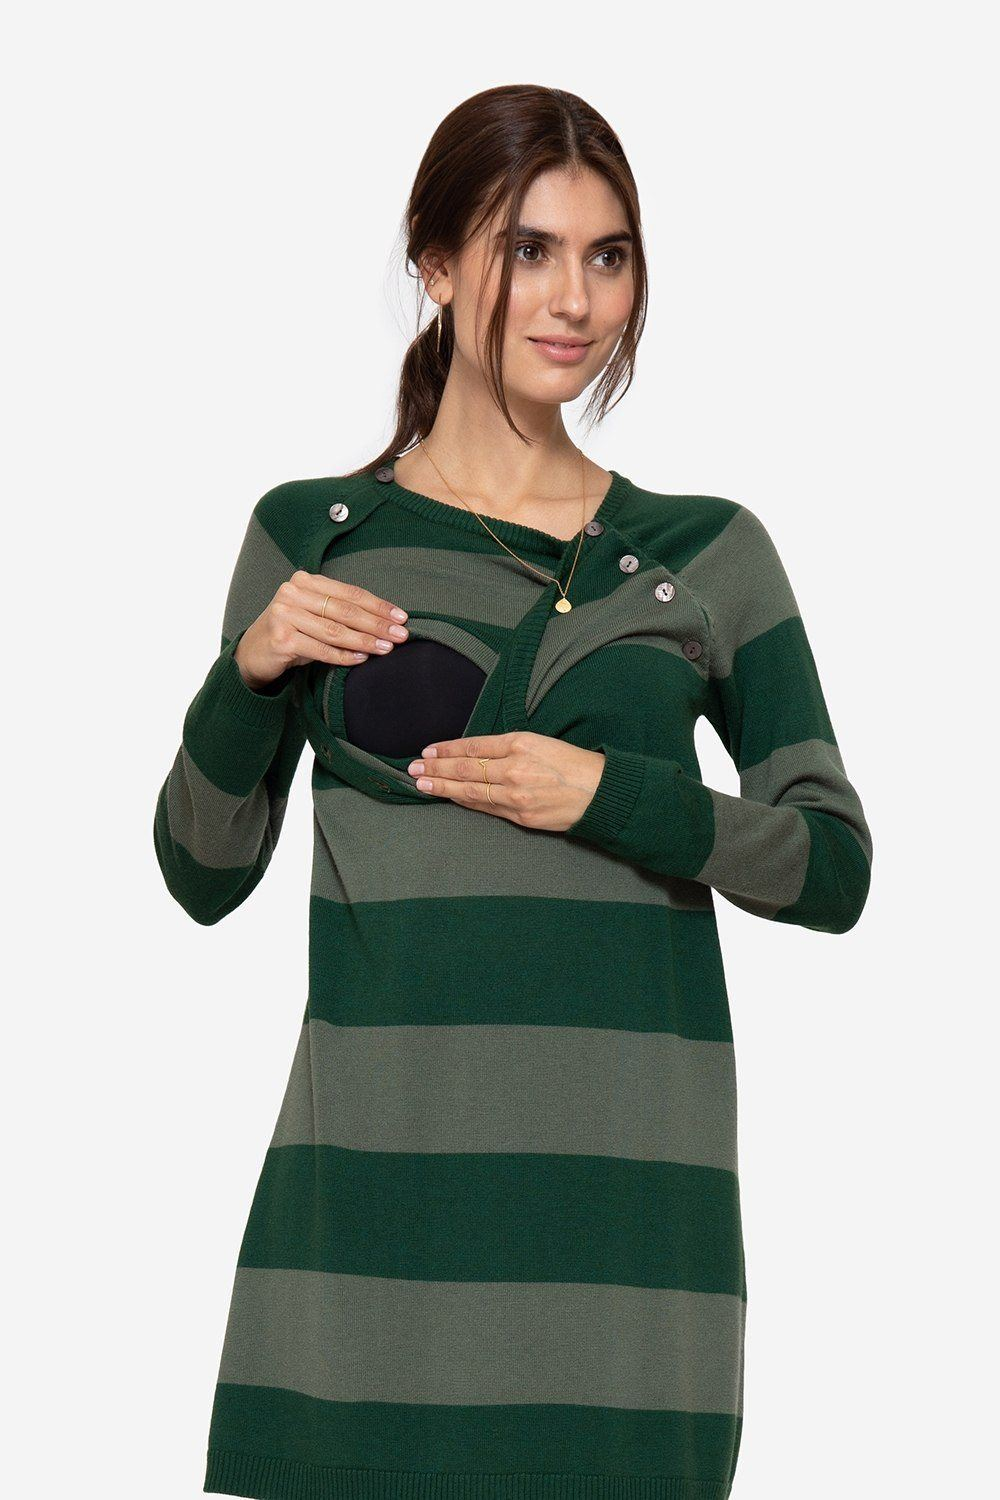 Green striped nursing dress with buttons, nursing access